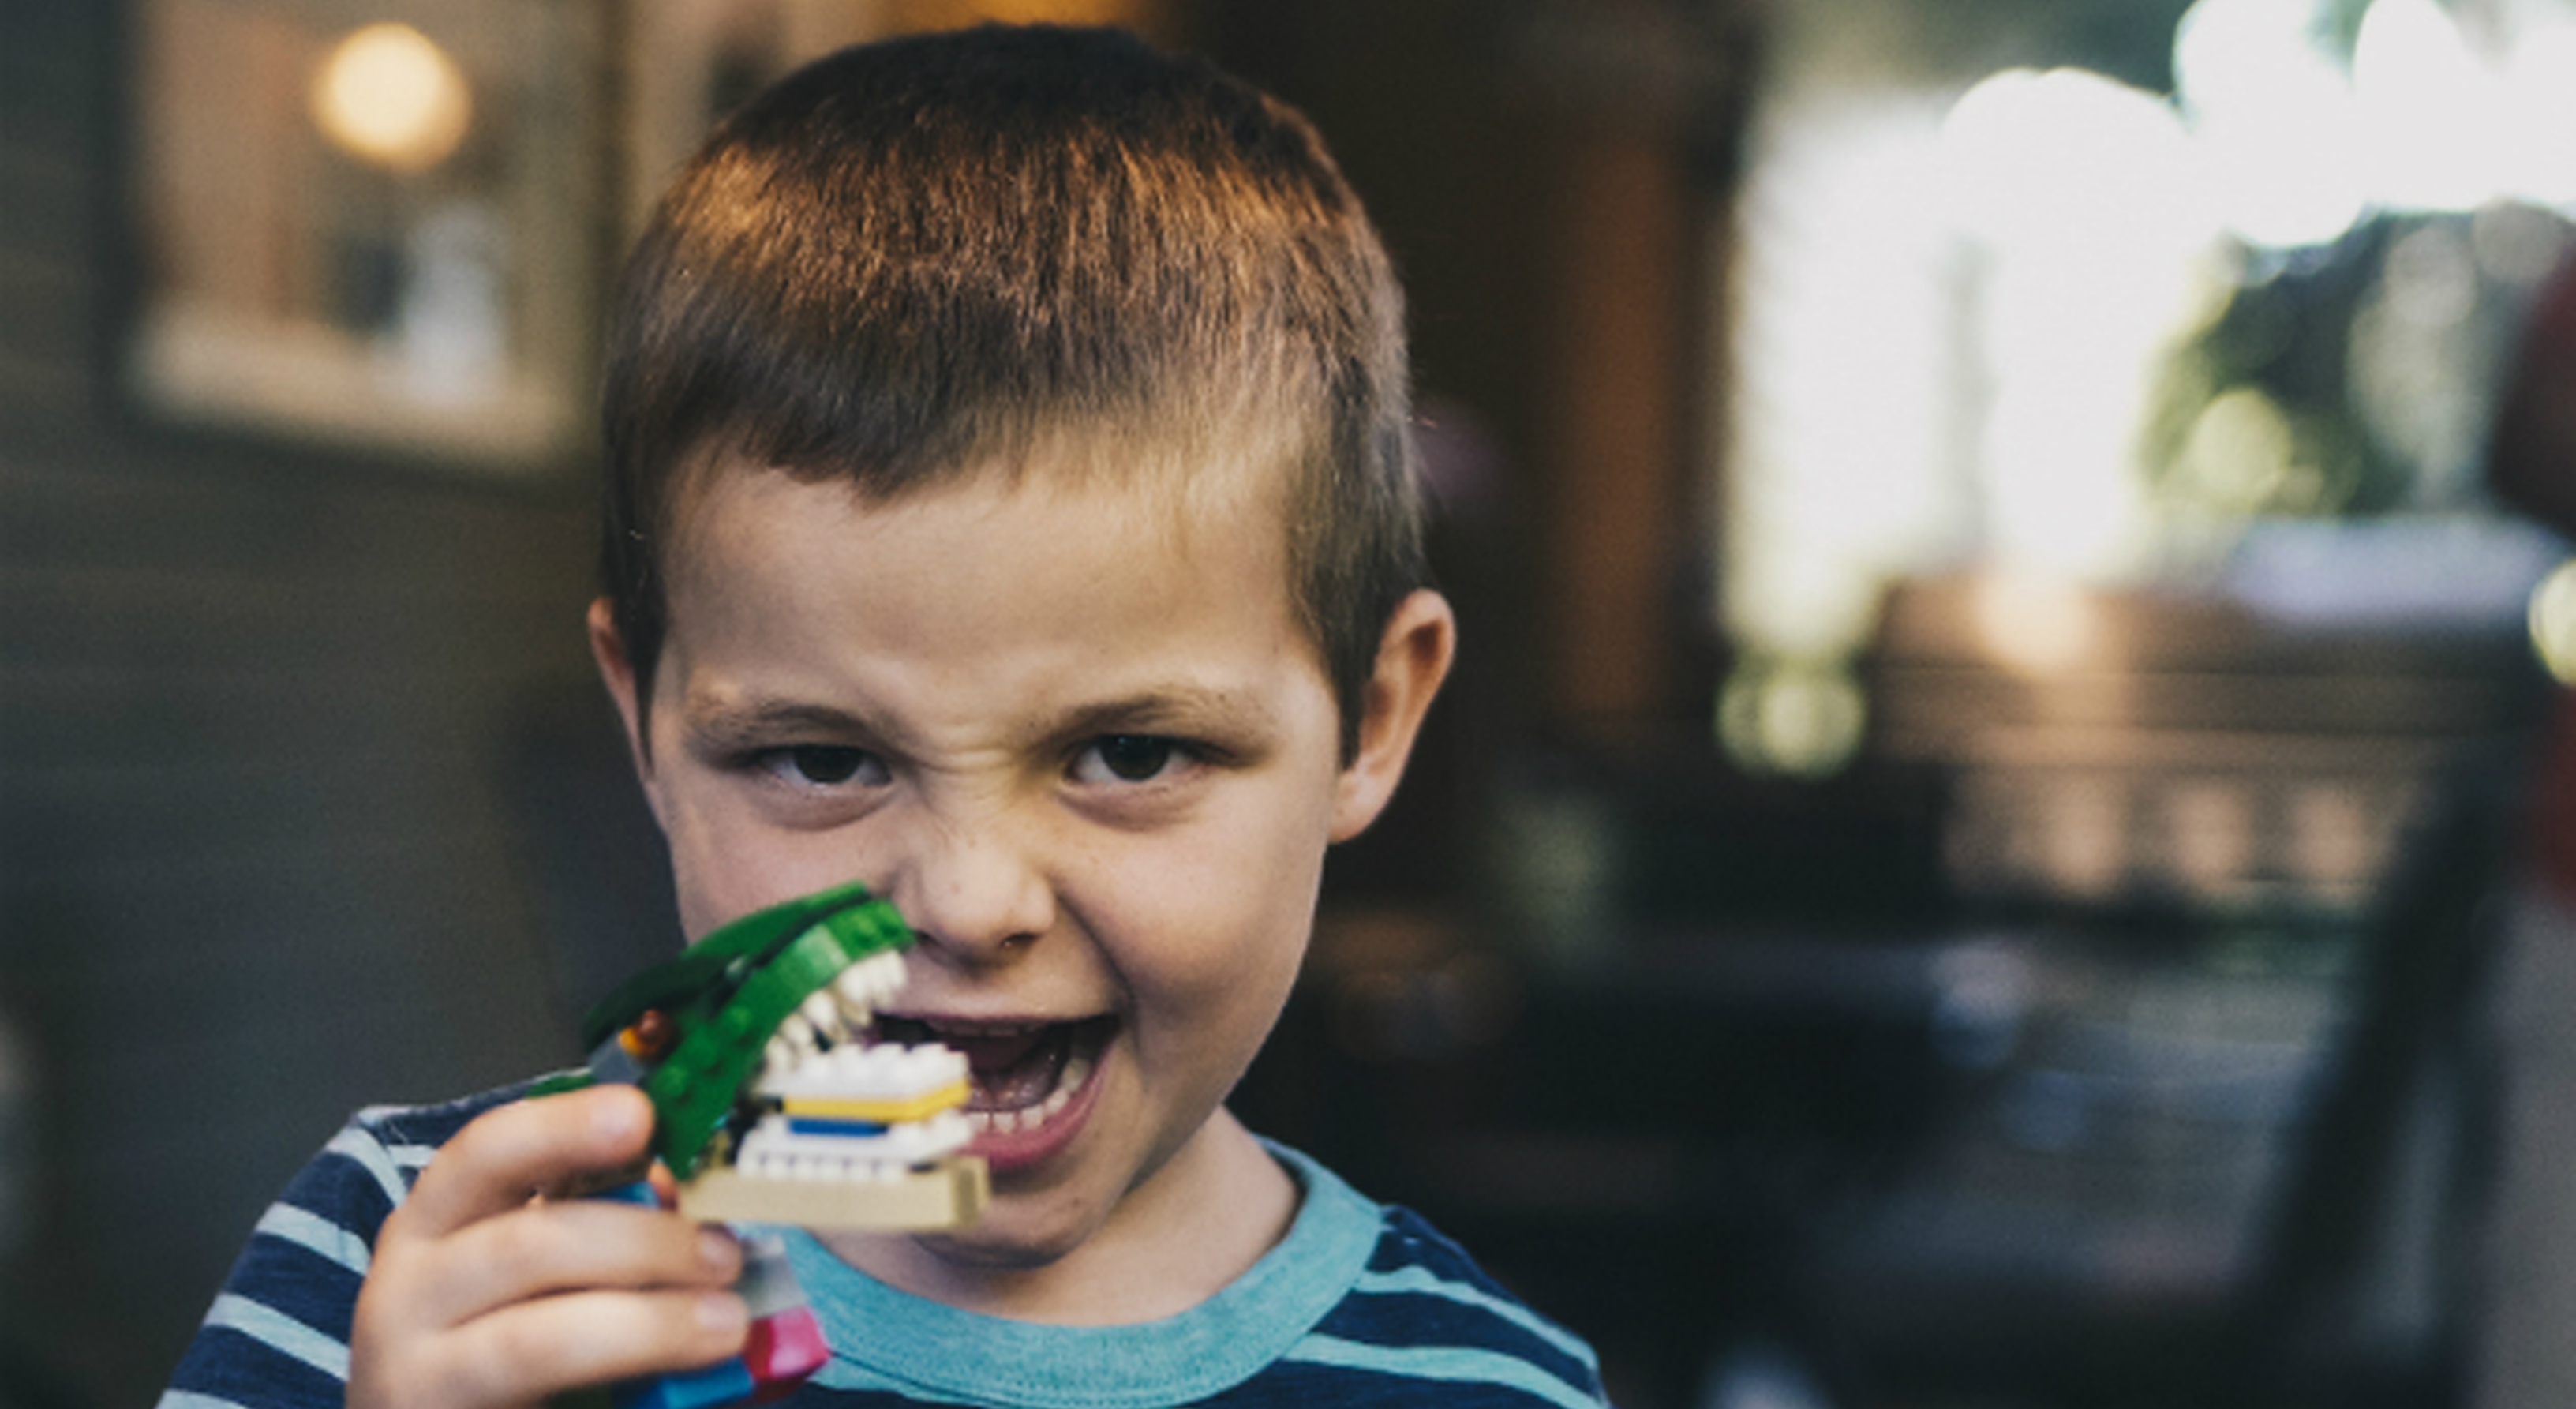 Toddler playing with dinosaur lego toy with teeth